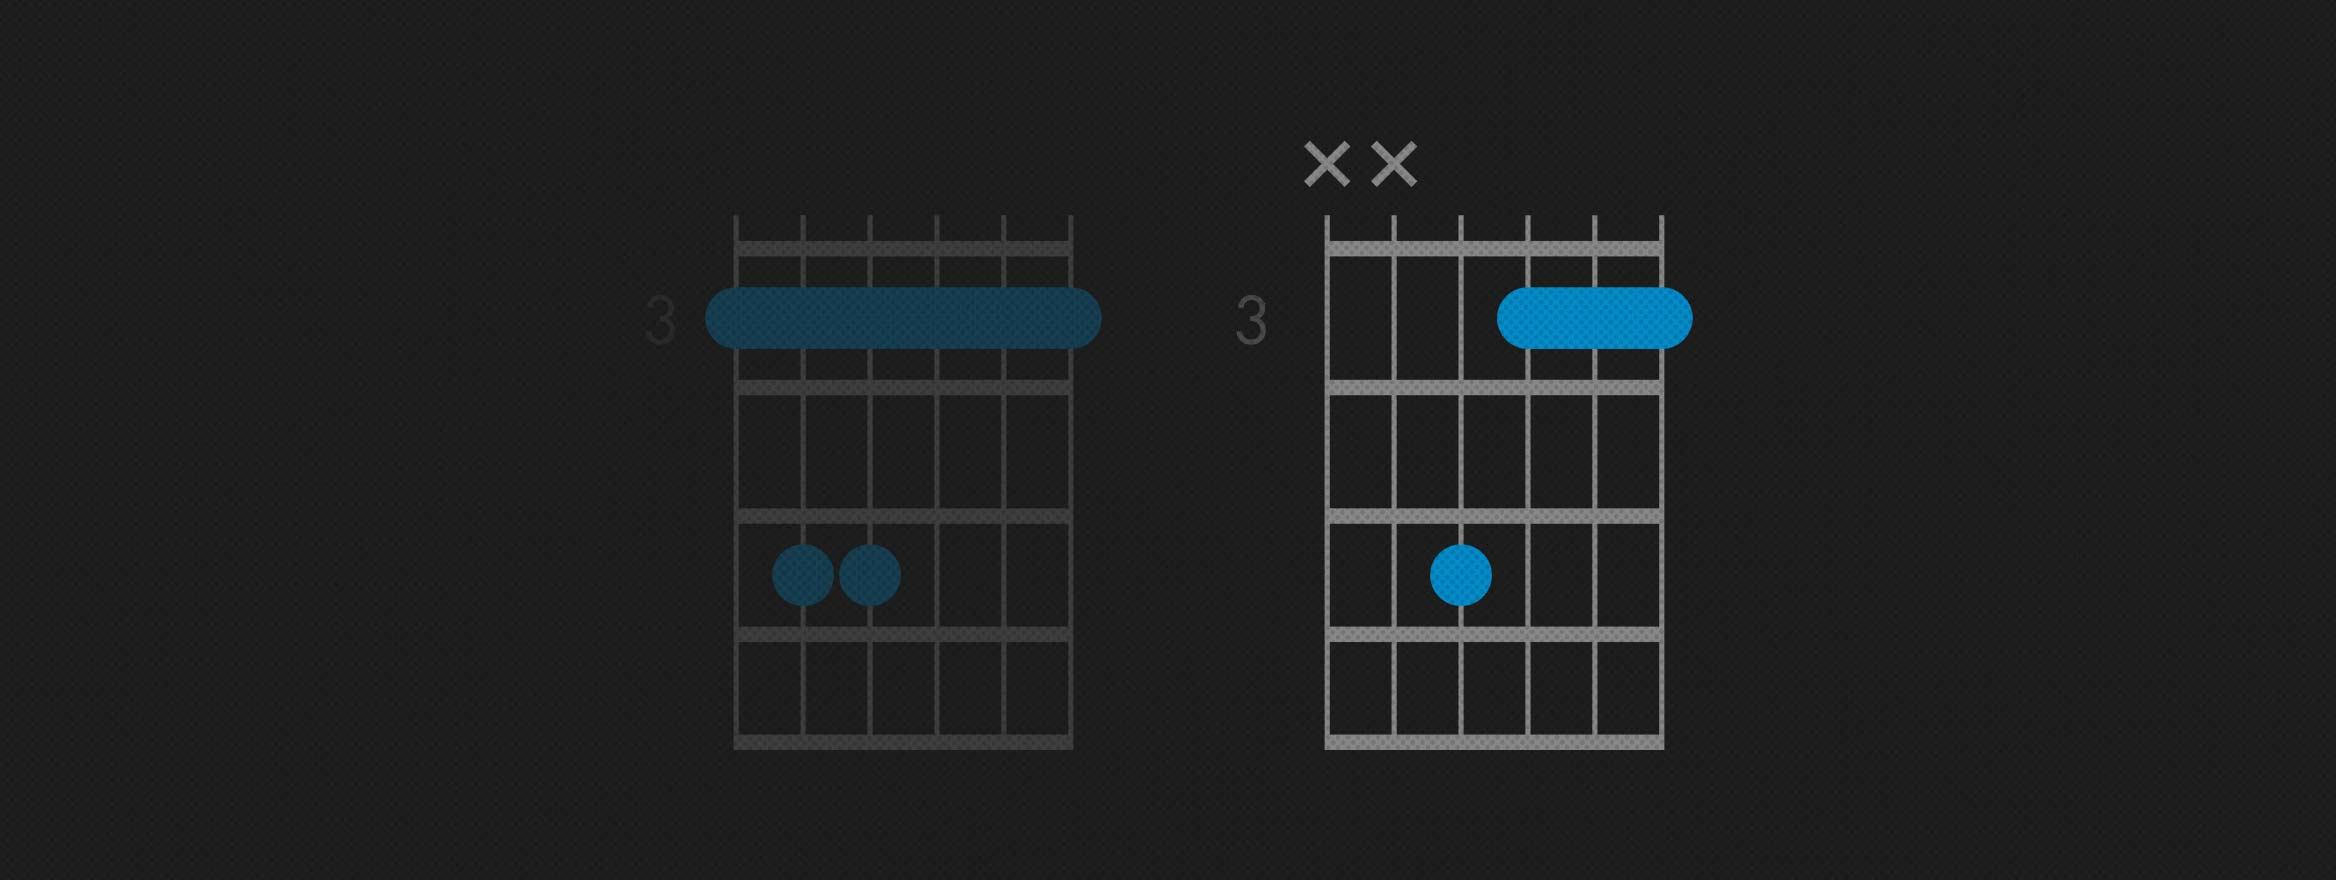 How to Play G Minor Chord on Guitar   Gm Chord   Fender Play